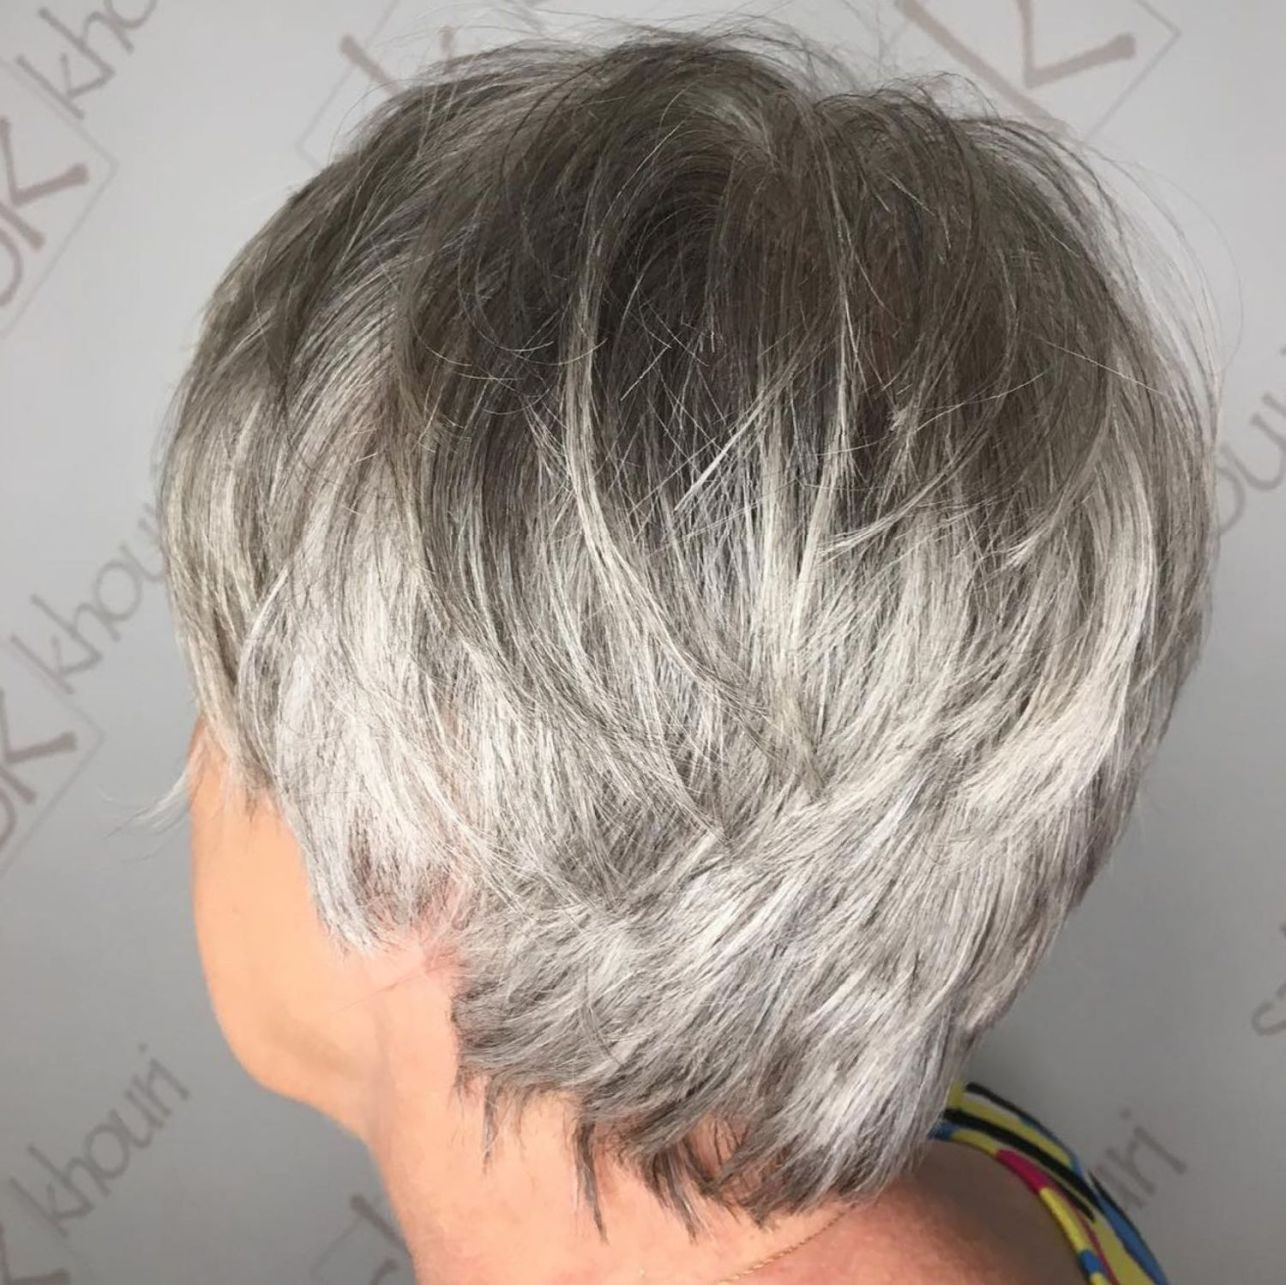 65 Gorgeous Gray Hair Styles In 2020 Hairstyles For Seniors